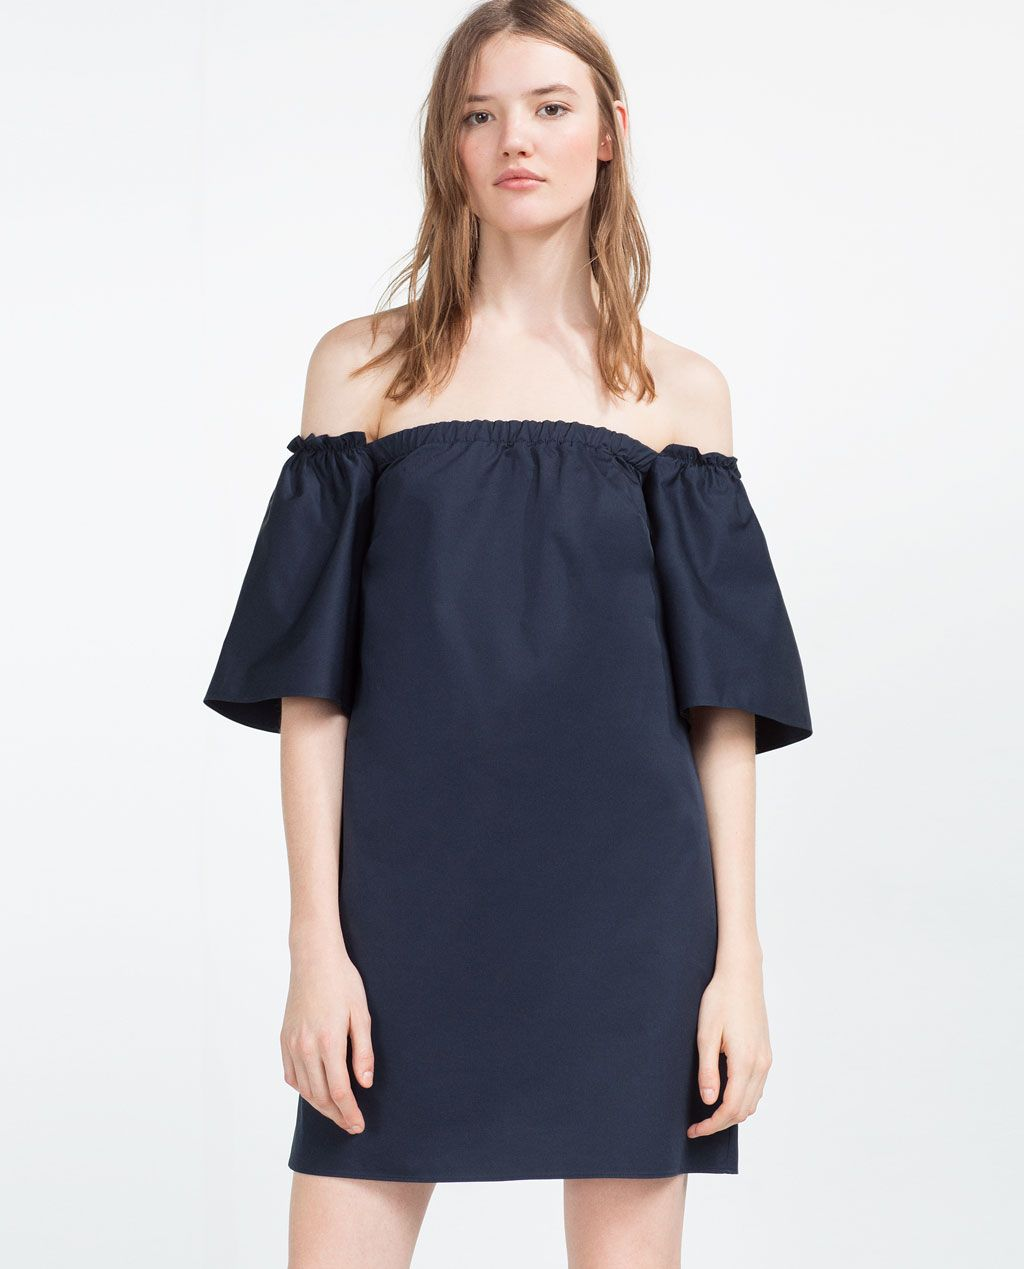 05175c80e18 OFF-THE-SHOULDER DRESS-Collection-TRF-NEW IN | ZARA United States ...